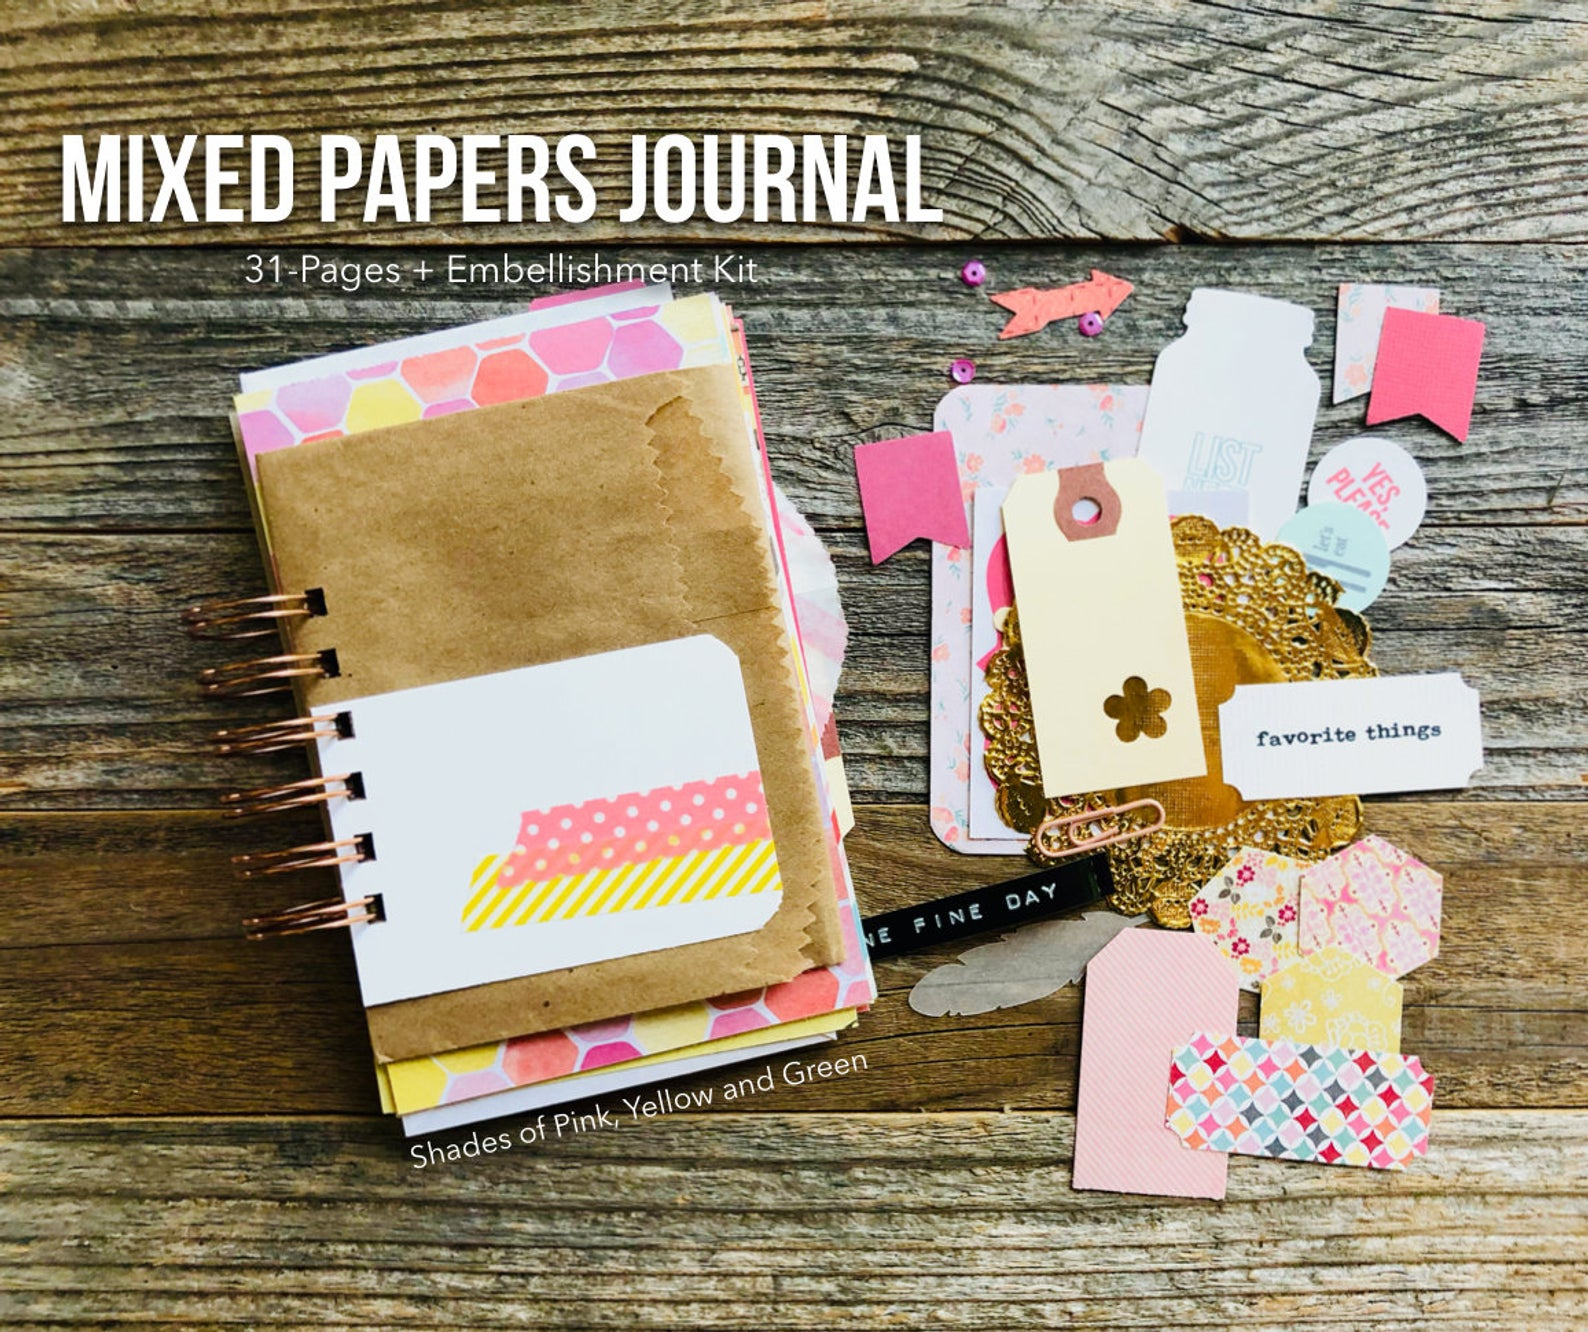 #junk journal #journal #30lists #lists challenge #30 Days of Lists #junk journaling #mixed paper journal #mini book #list journal